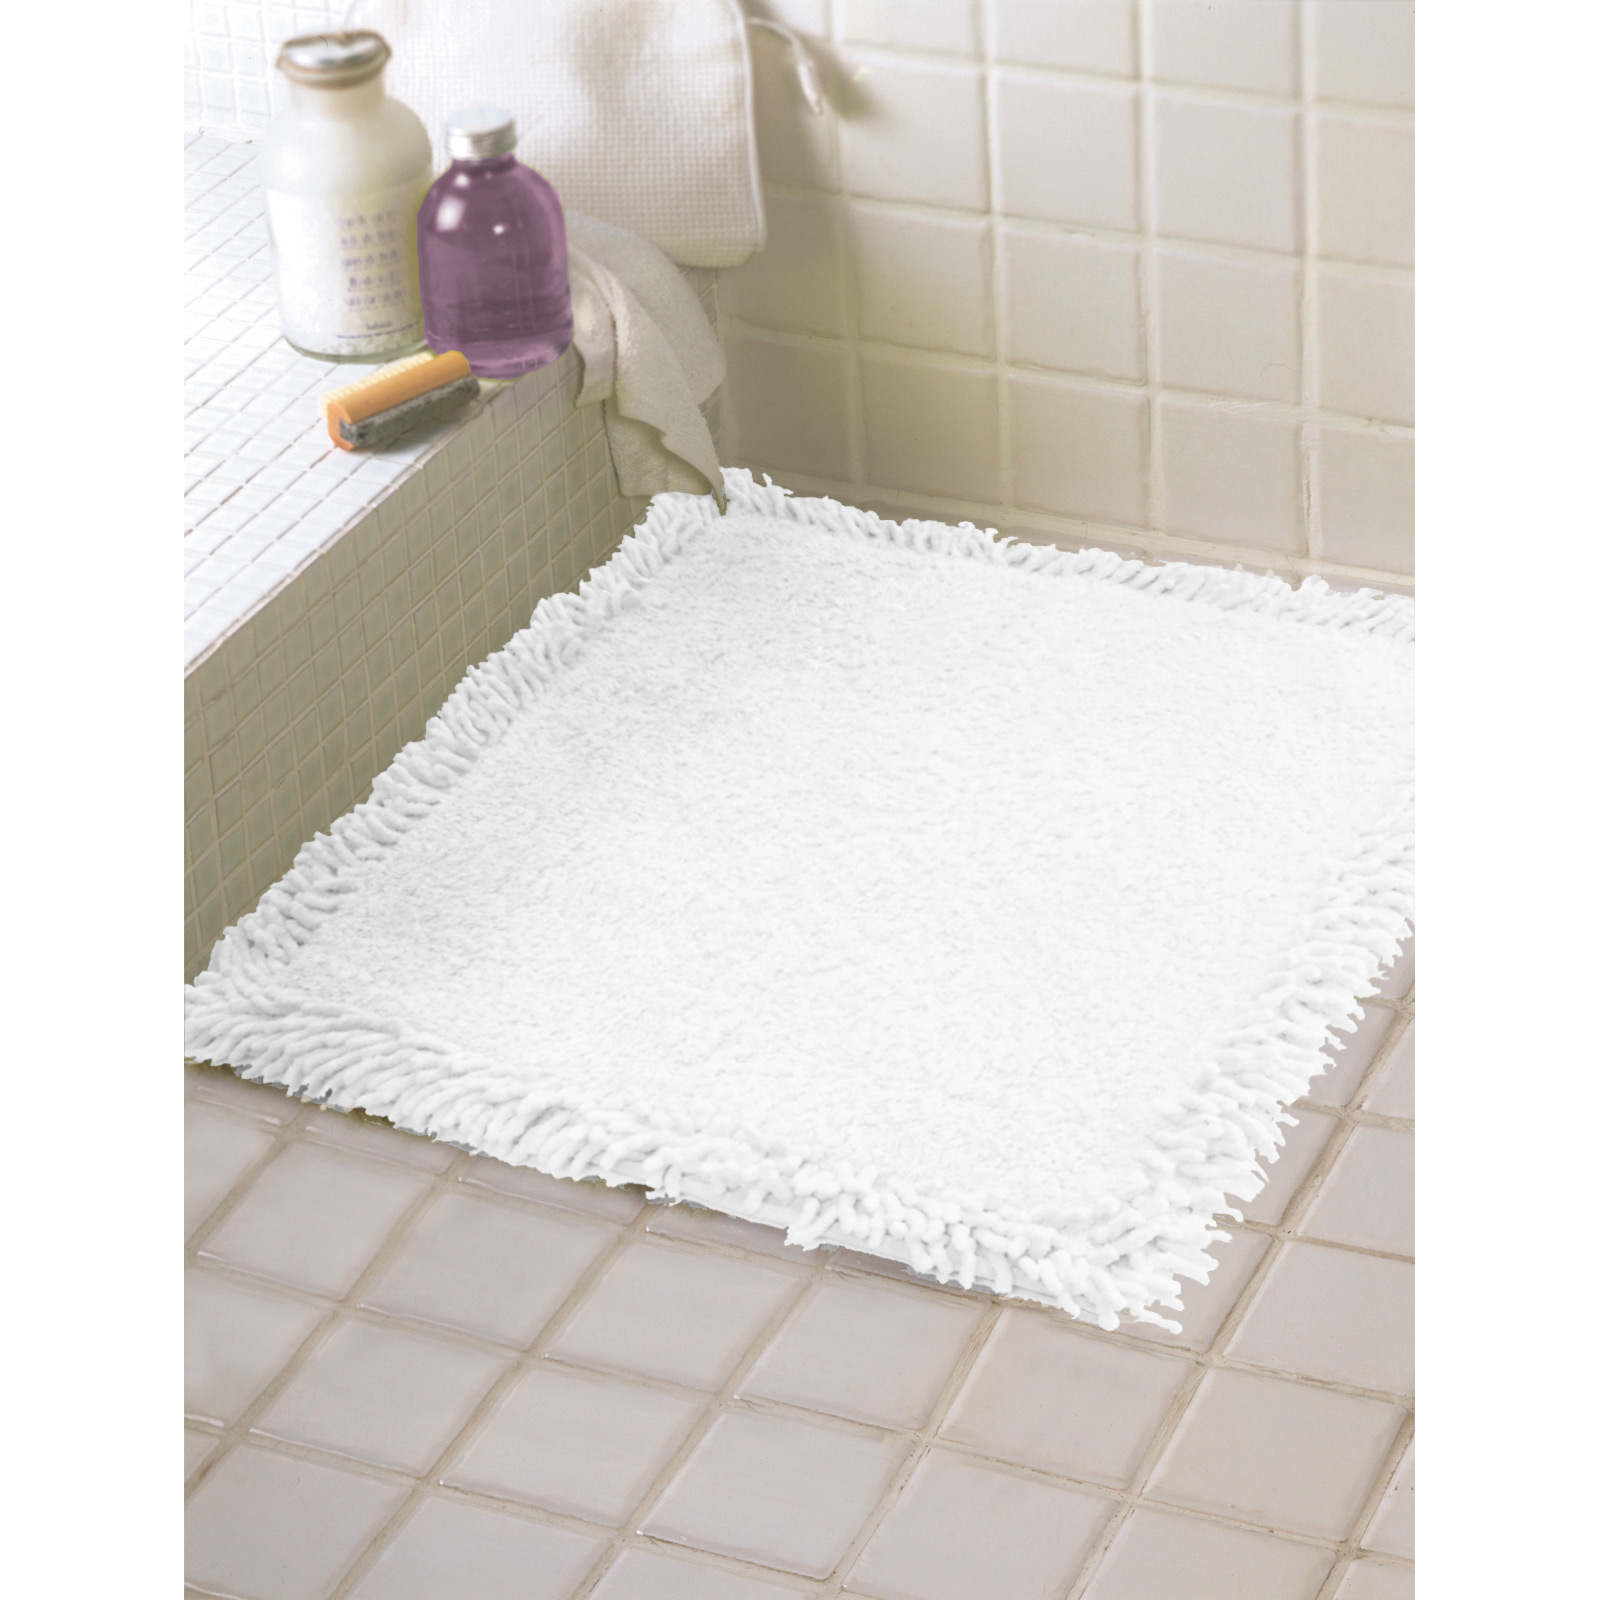 buy custom soft in shower on bathmat quadrant detail tub bathroom round product alibaba mats bathtub mat